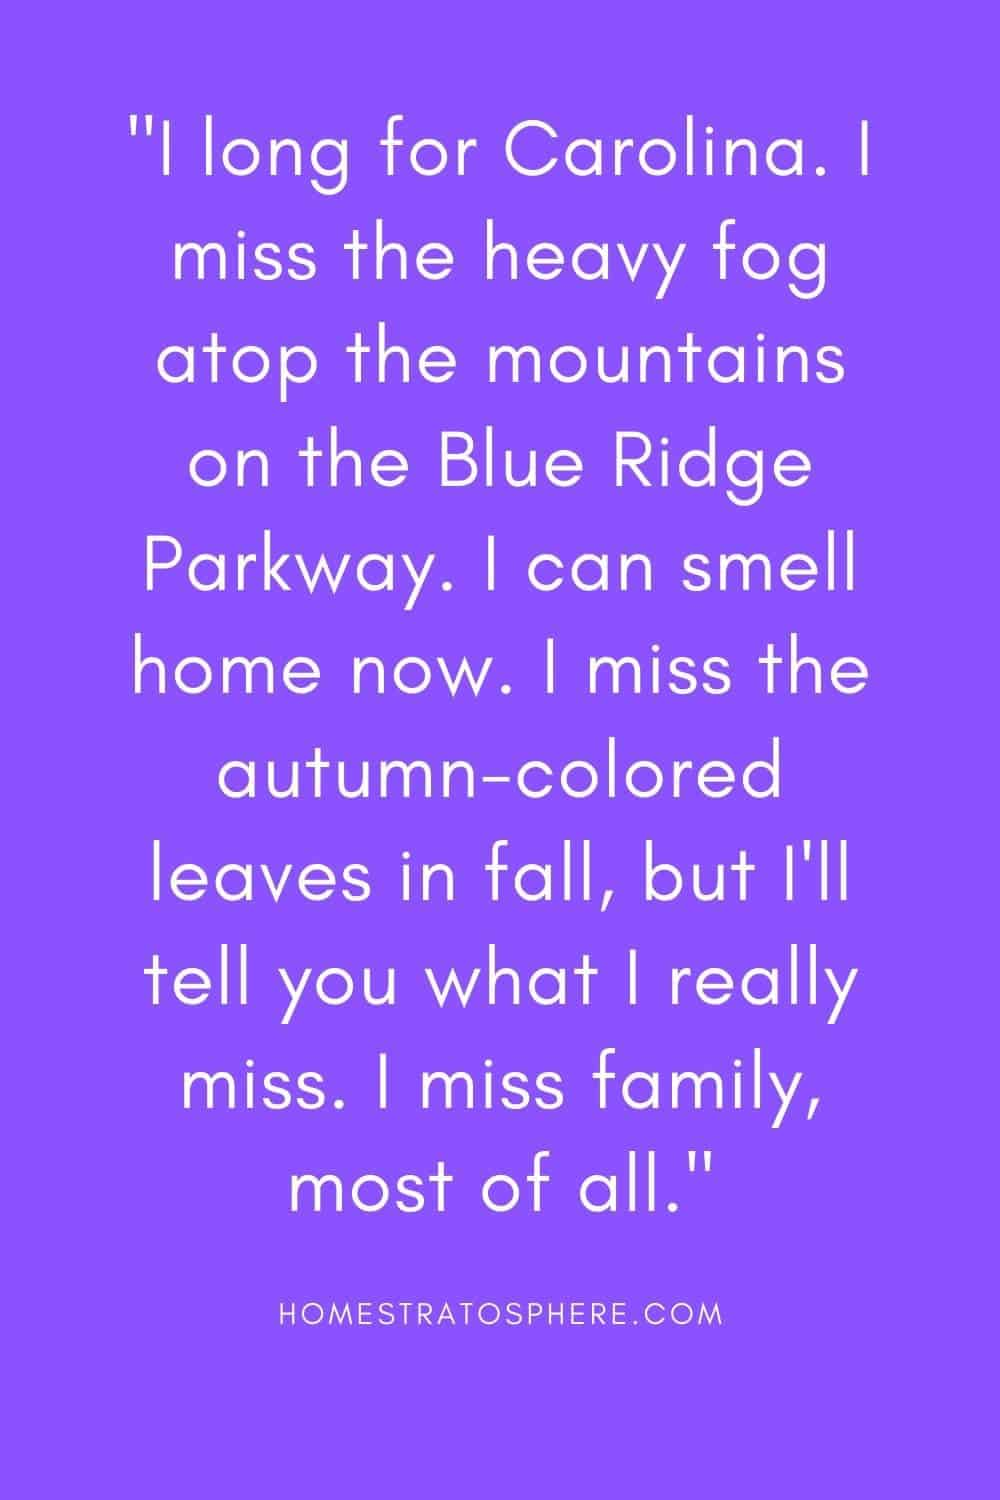 """""""I long for Carolina. I miss the heavy fog atop the mountains on the Blue Ridge Parkway. I can smell home now. I miss the autumn-colored leaves in fall, but I'll tell you what I really miss. I miss family, most of all."""""""